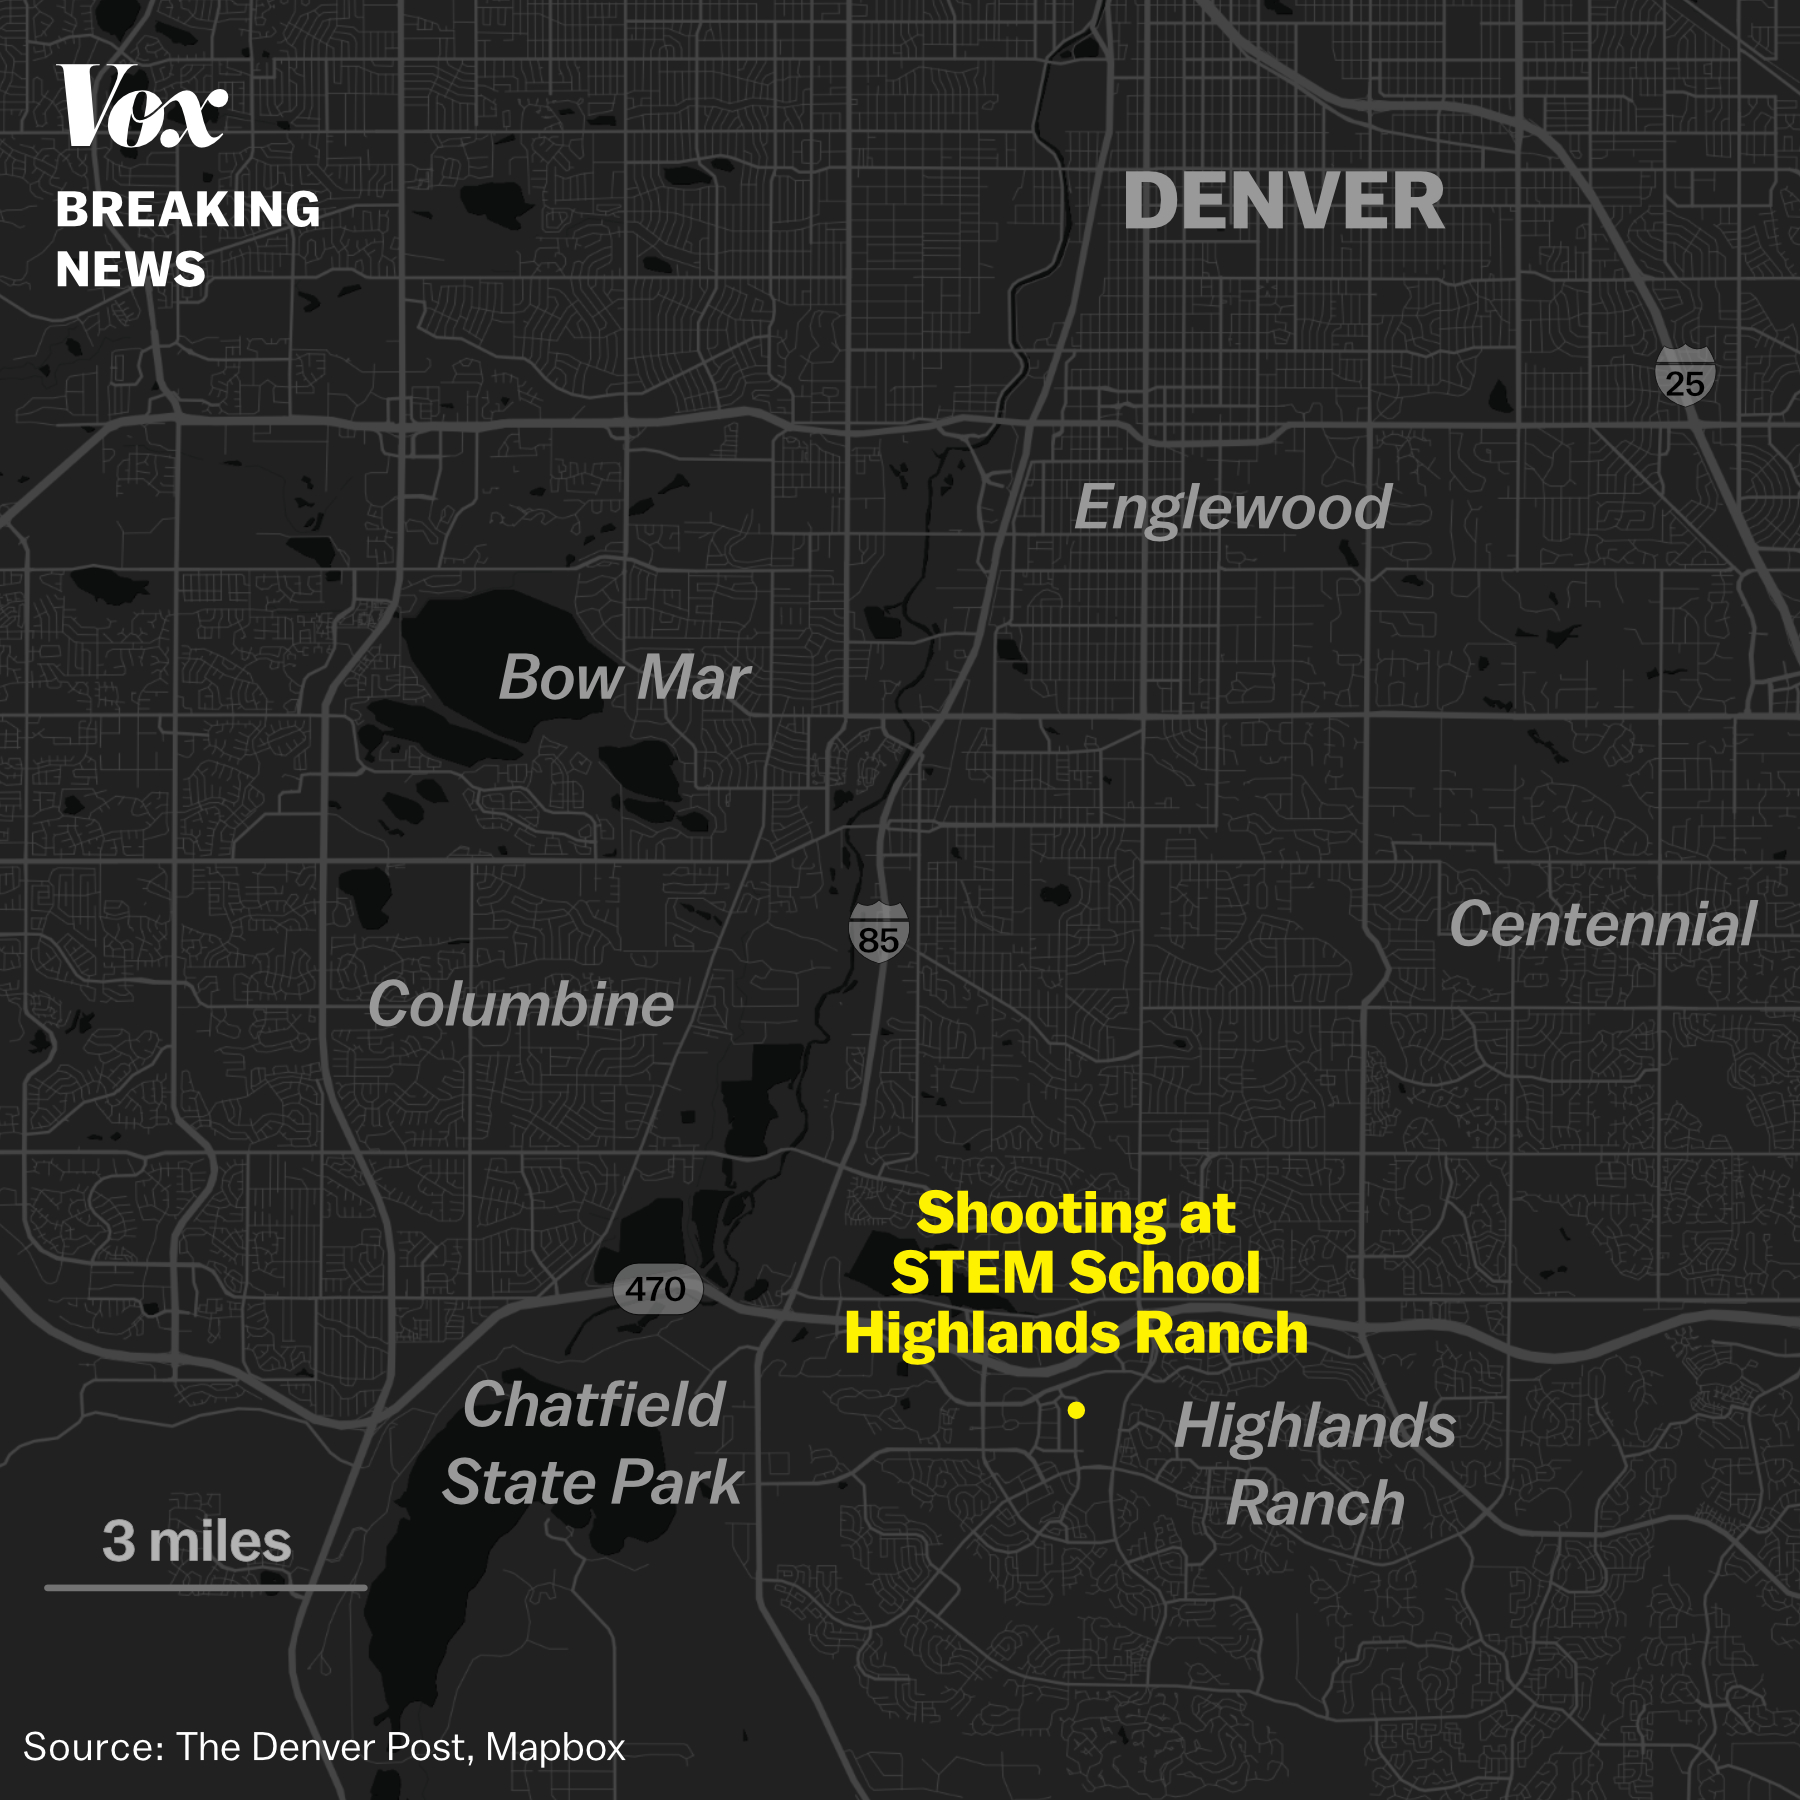 Colorado School Shooting Platte: Policy & Politics On Flipboard By Vox